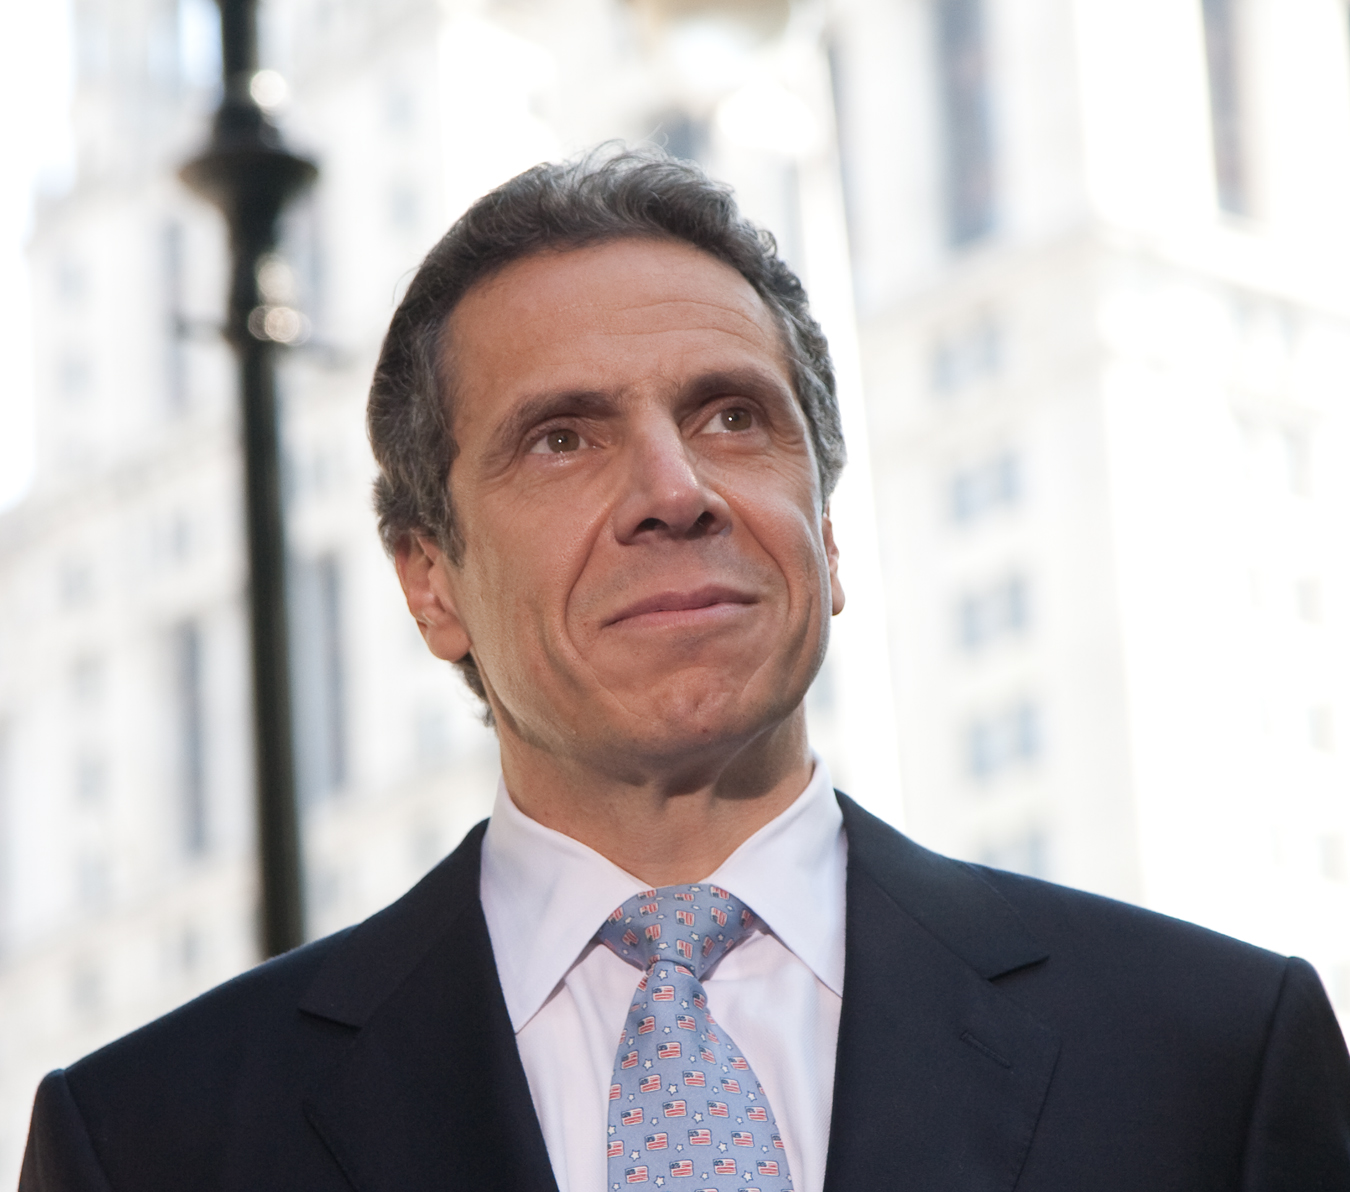 Andrew Cuomo says His Federal Government Is Not Compatible Enough To Handle Pandemic COVID-19 Crisis